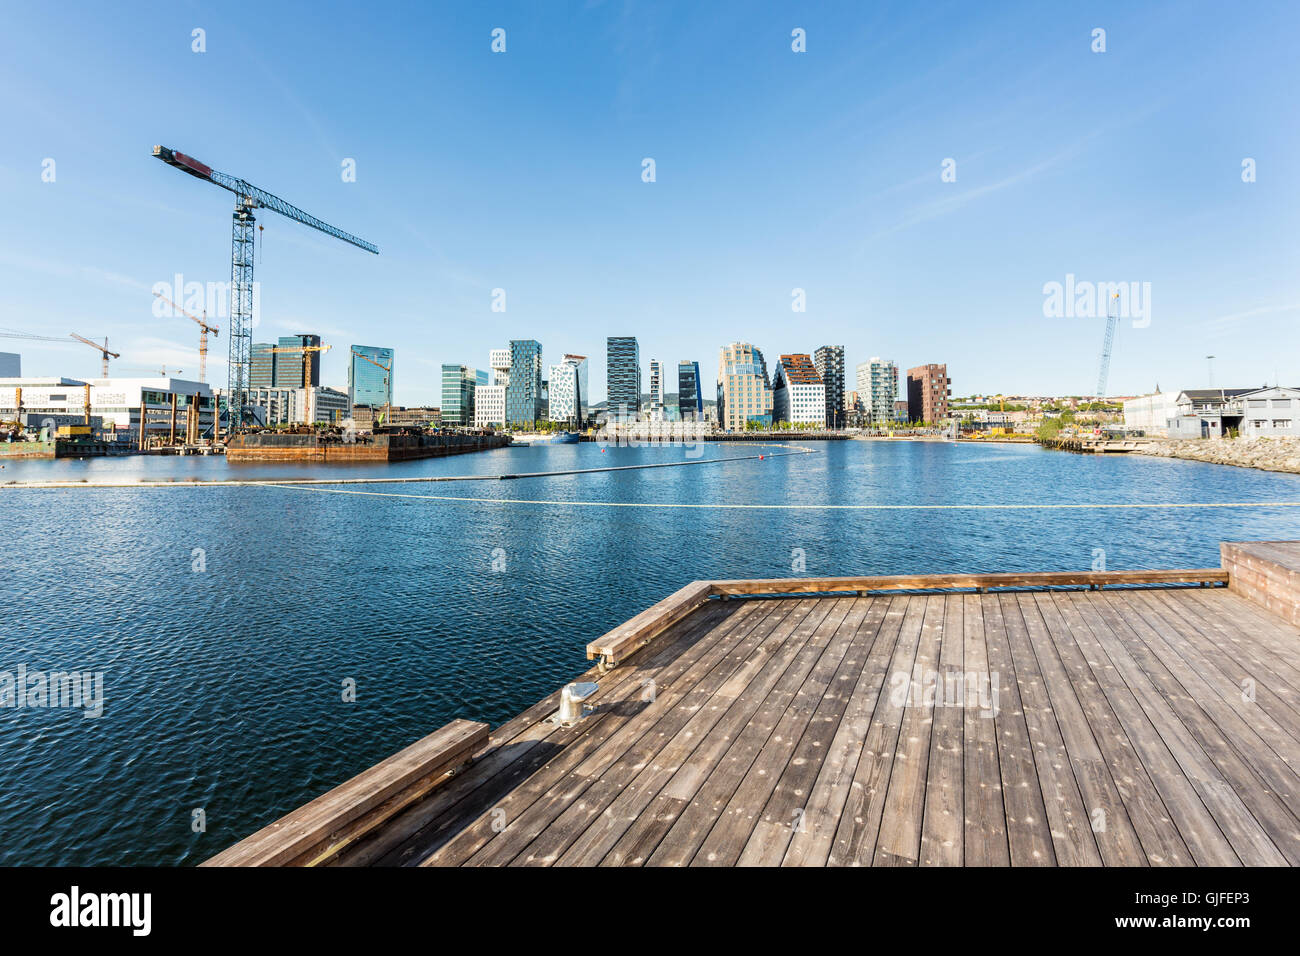 Oslo business district in Norway capital city view from a new developpement of  a residential area in the Oslo fjord - Stock Image